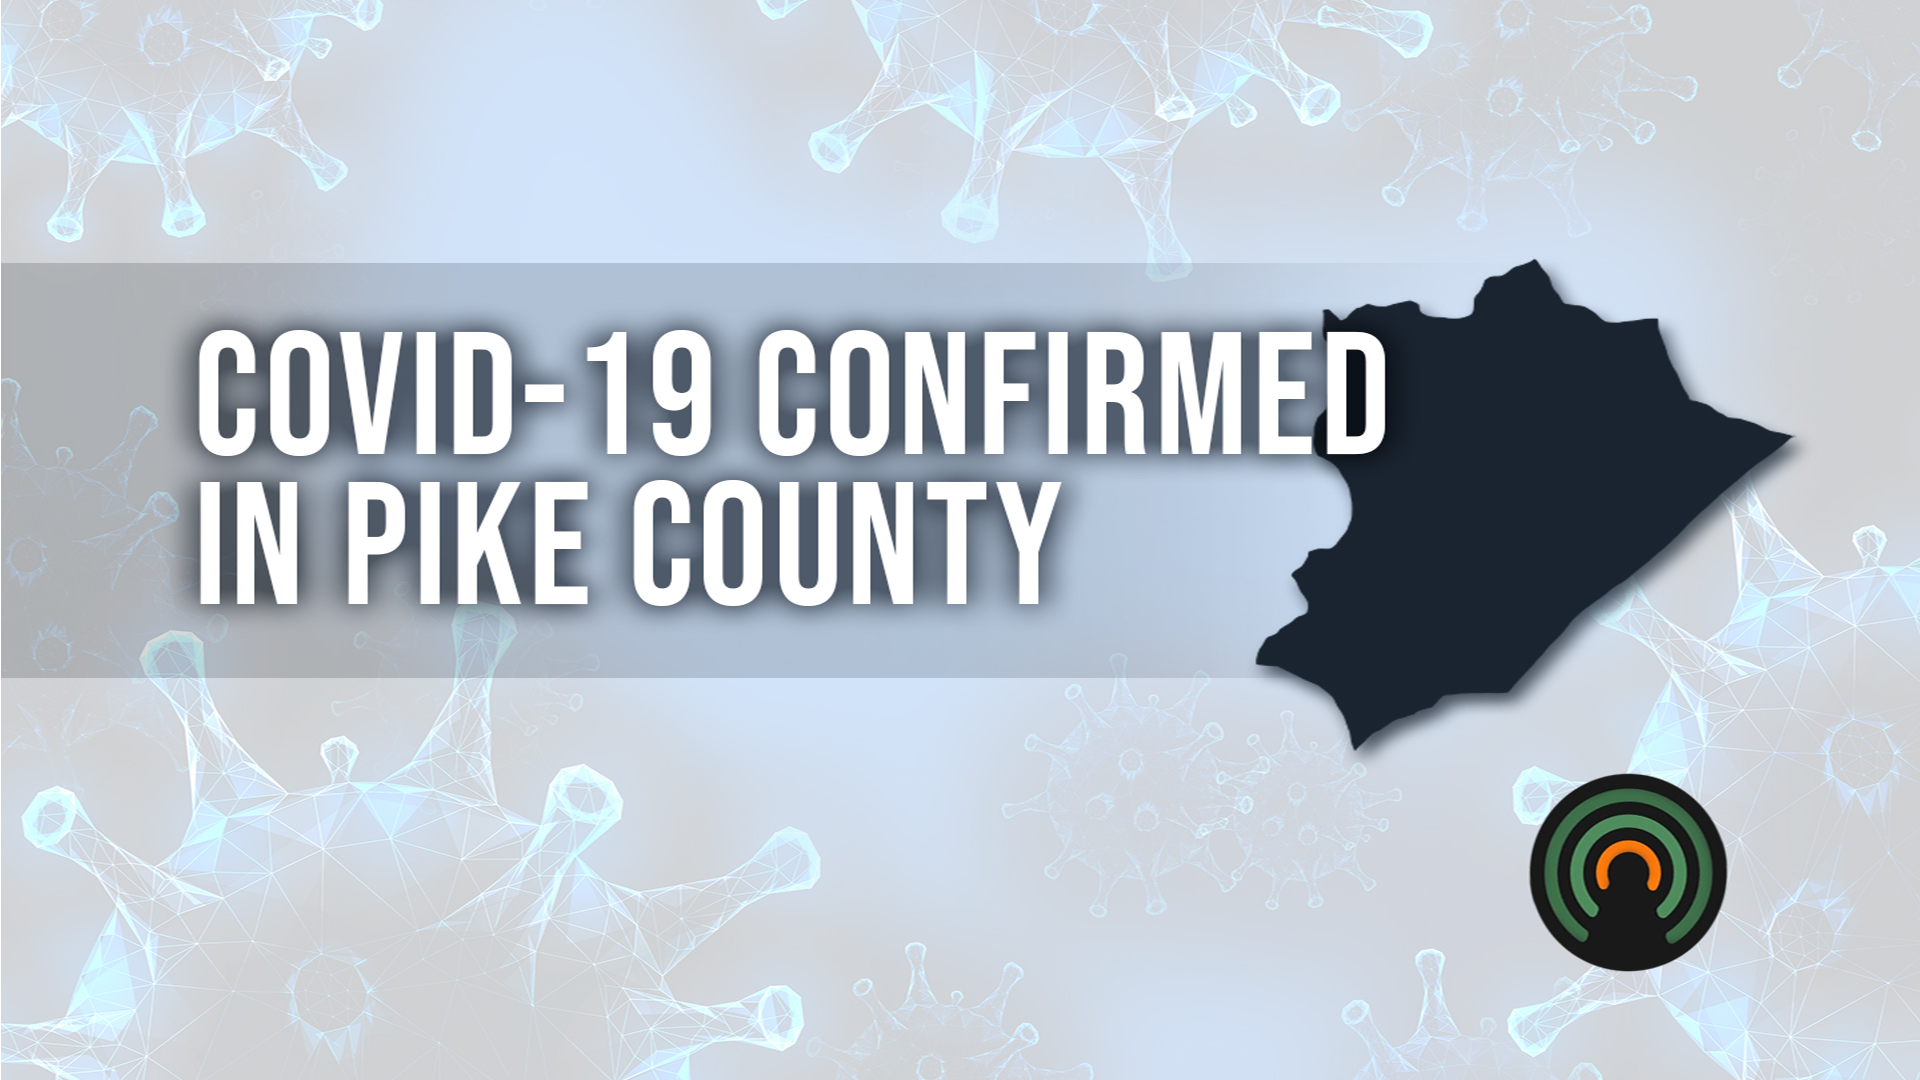 Health officials confirm 13 additional COVID-19 cases in Pike County